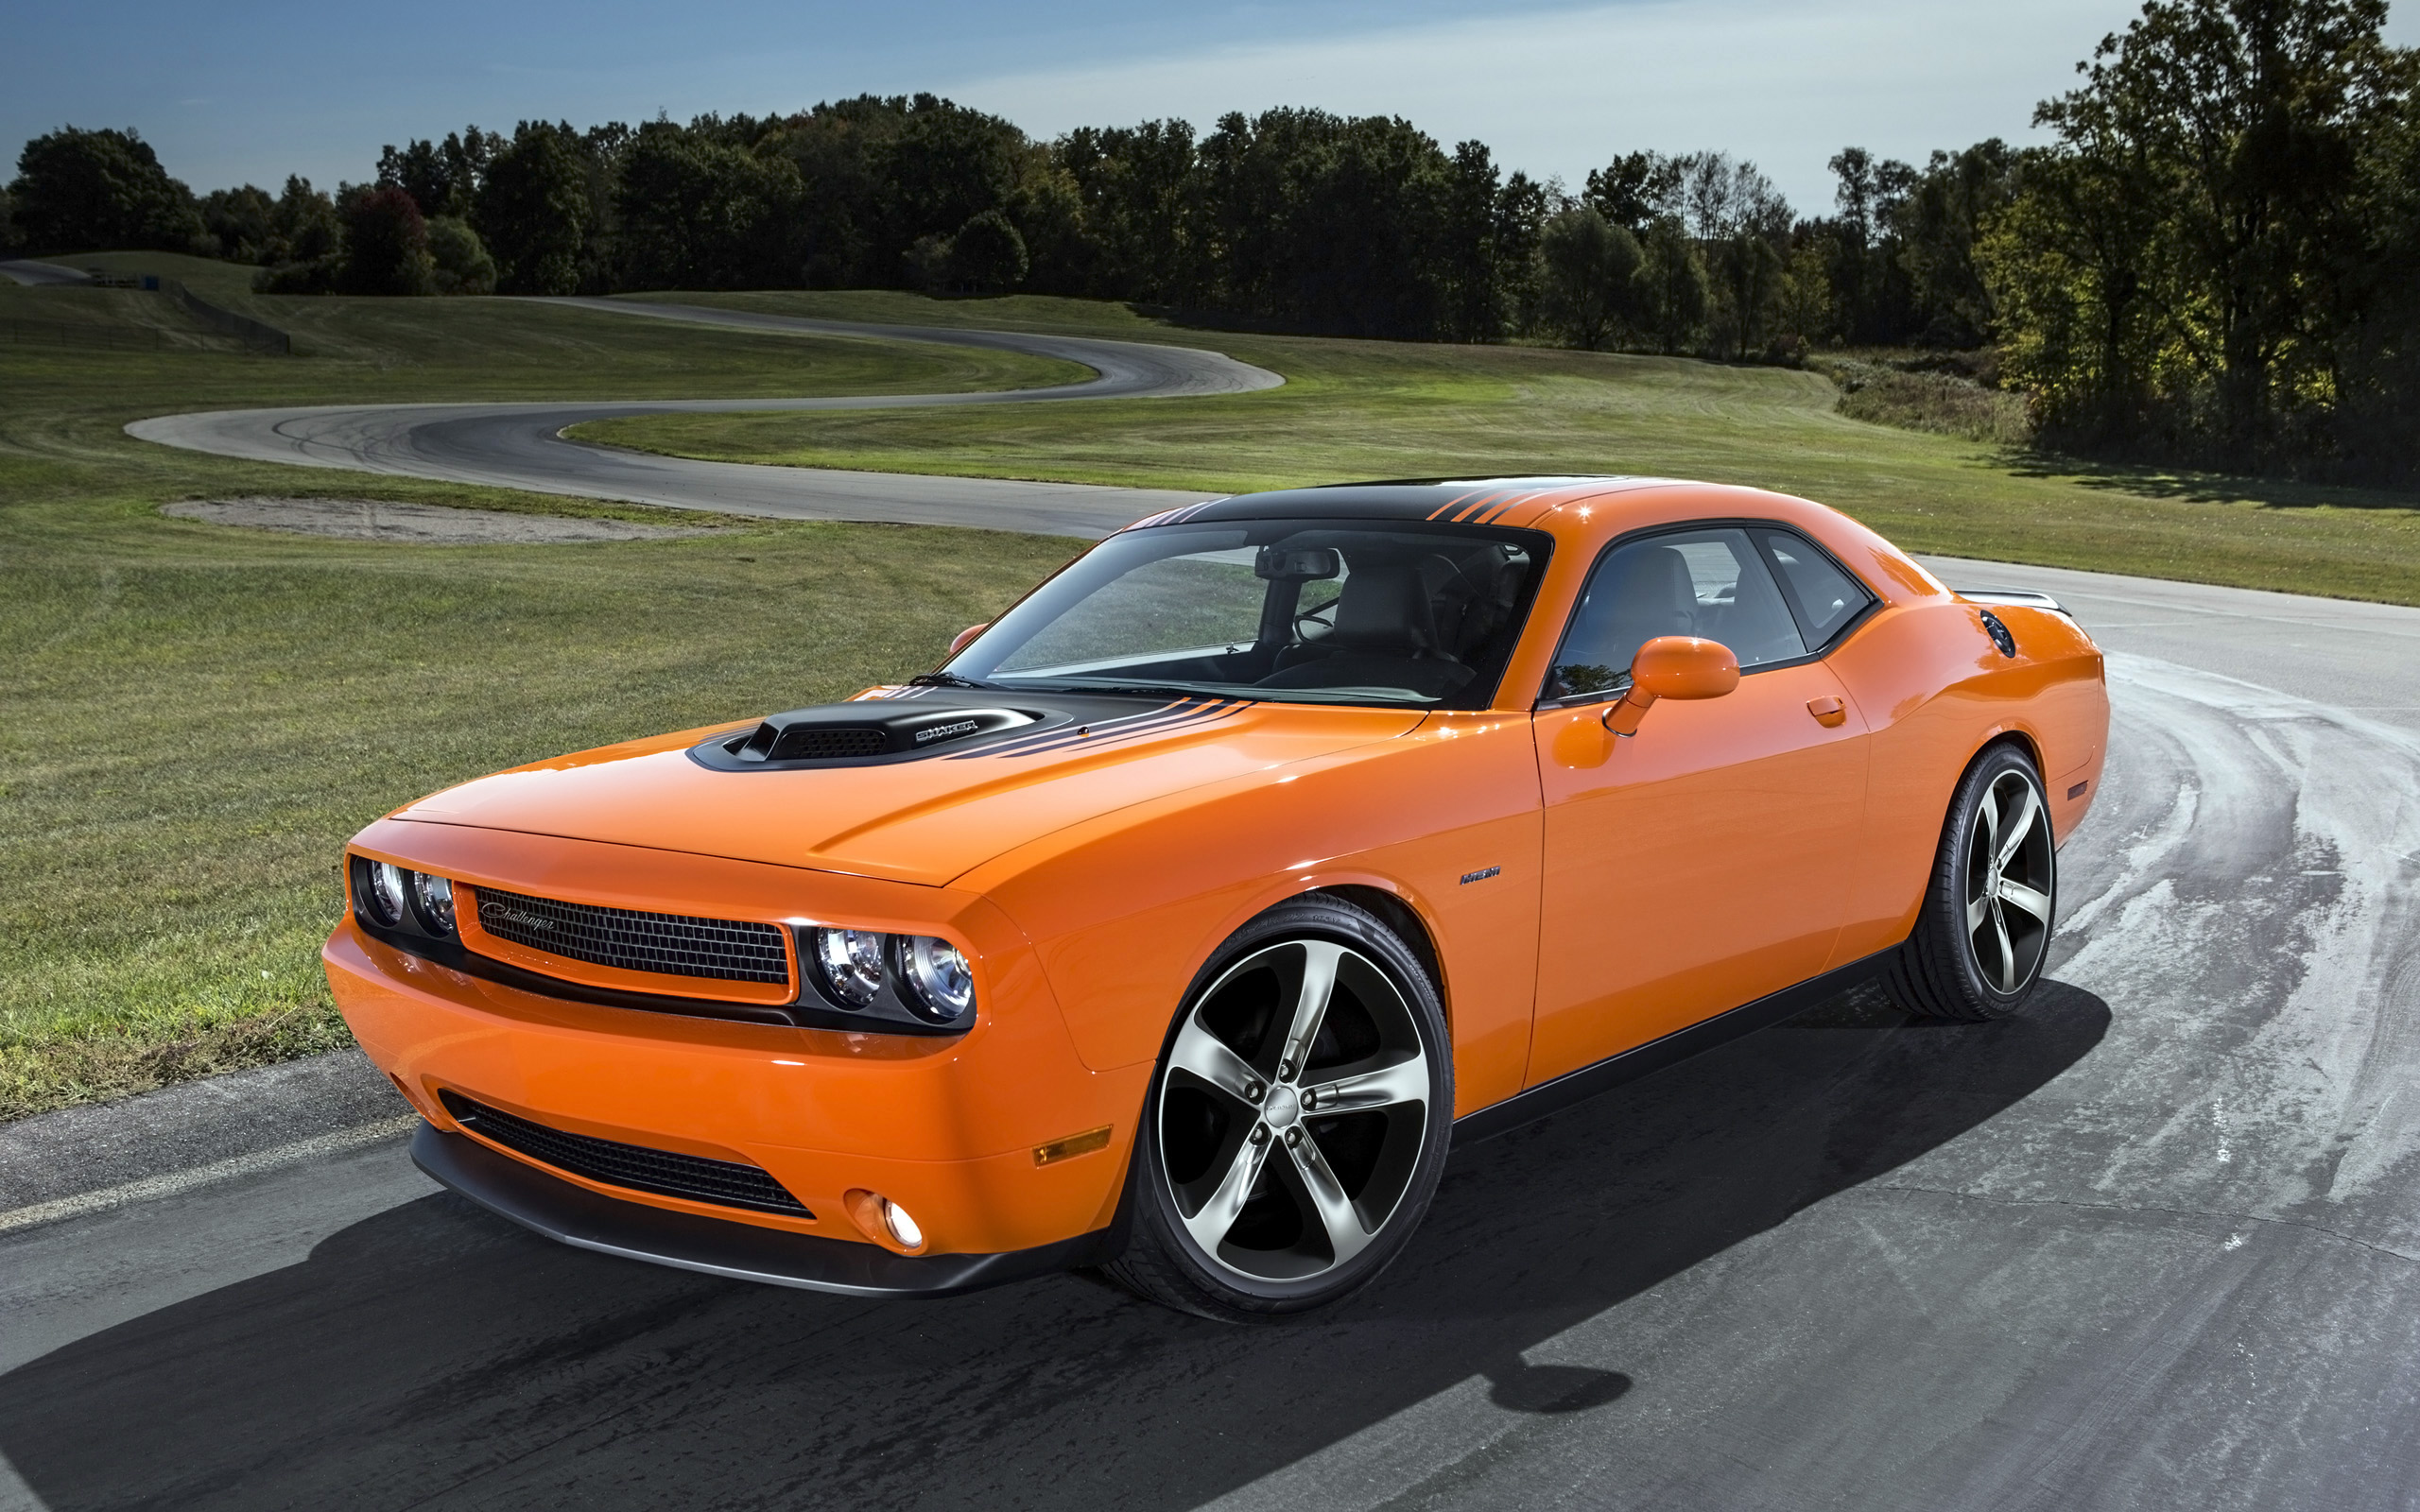 2014 Dodge Challenger RT Shaker 464.53 Kb